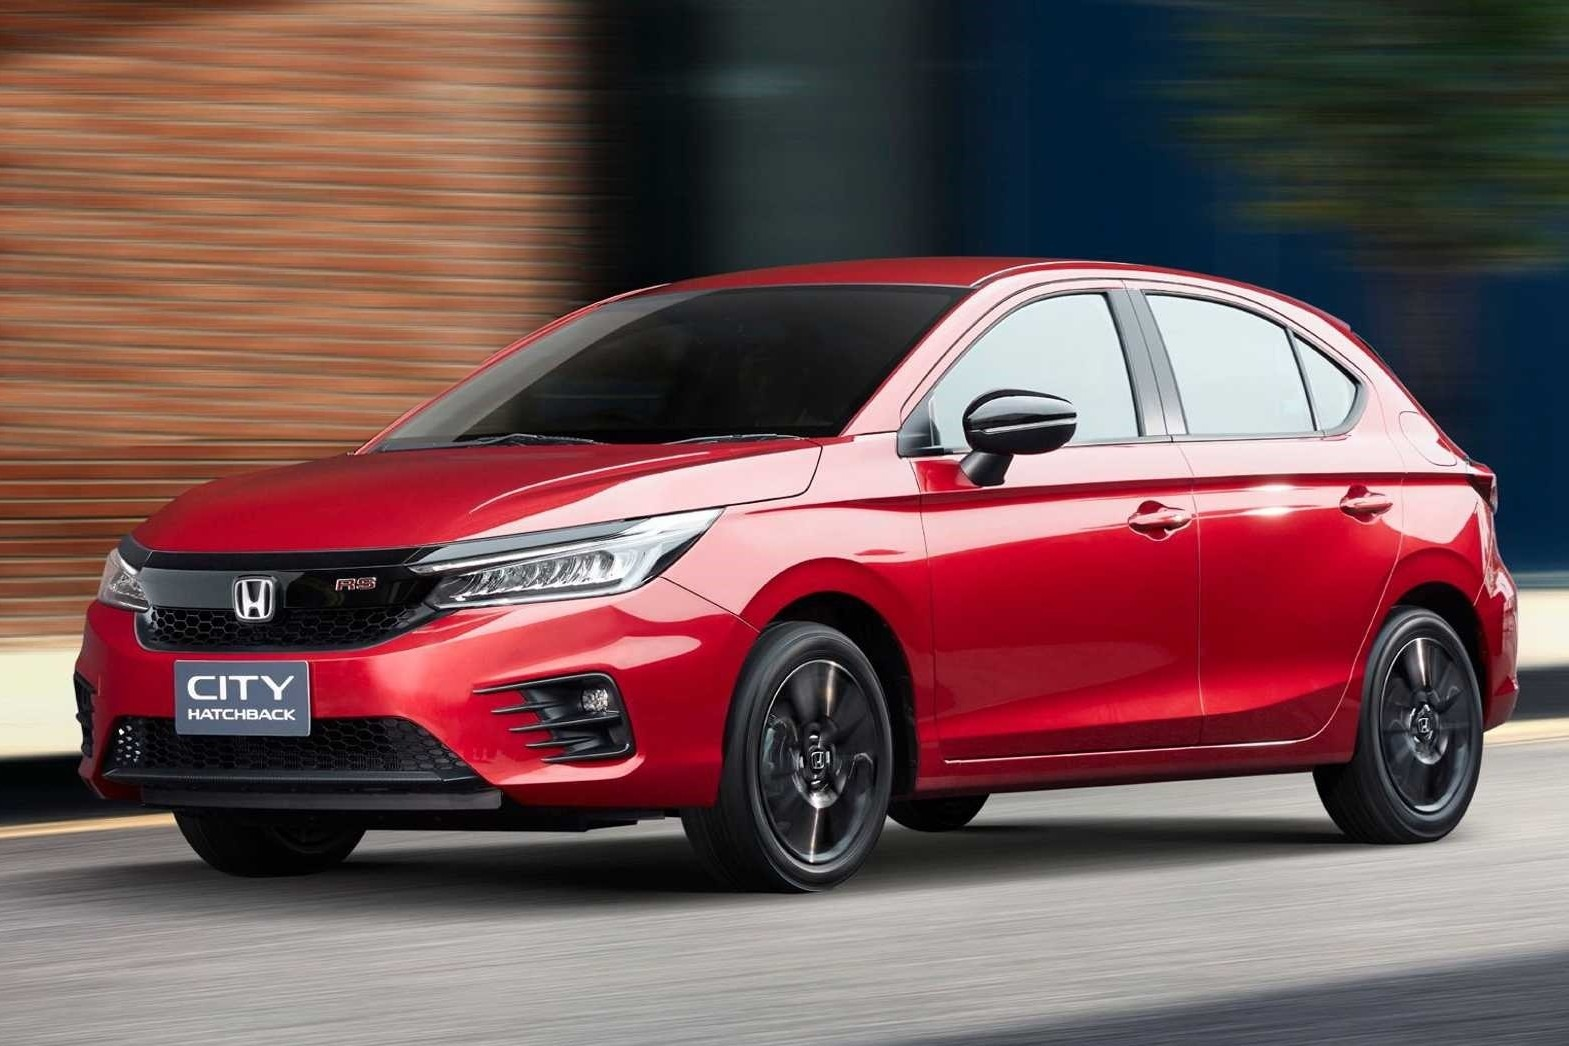 The new model comes based on the City sedan, but differs from it in the tech department and starts 20,000 Baht above (from 599,000 Thai Baht).